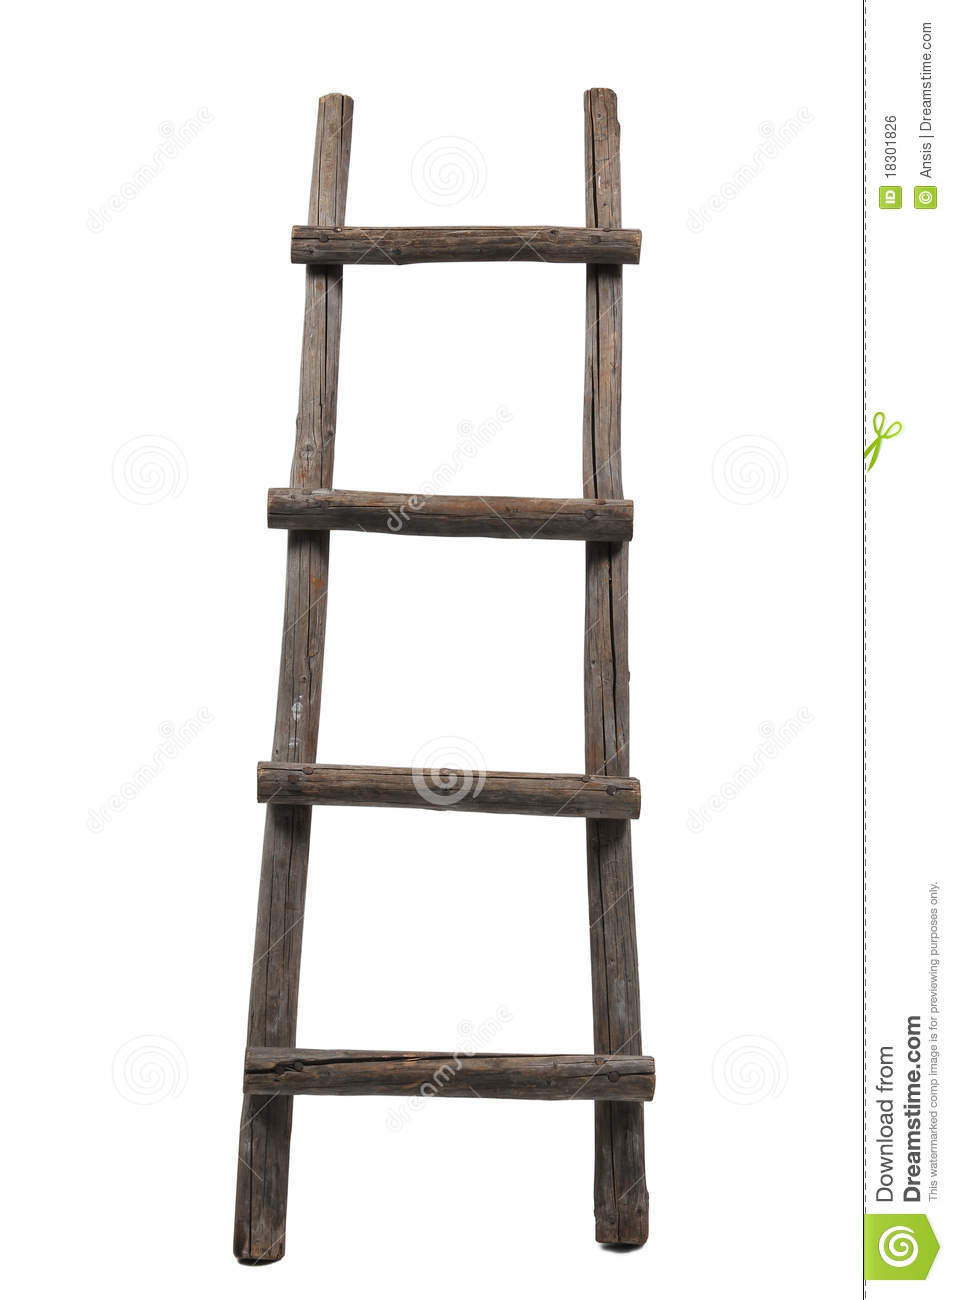 Old Wooden Ladder Royalty Free Stock Image - Image: 18301826